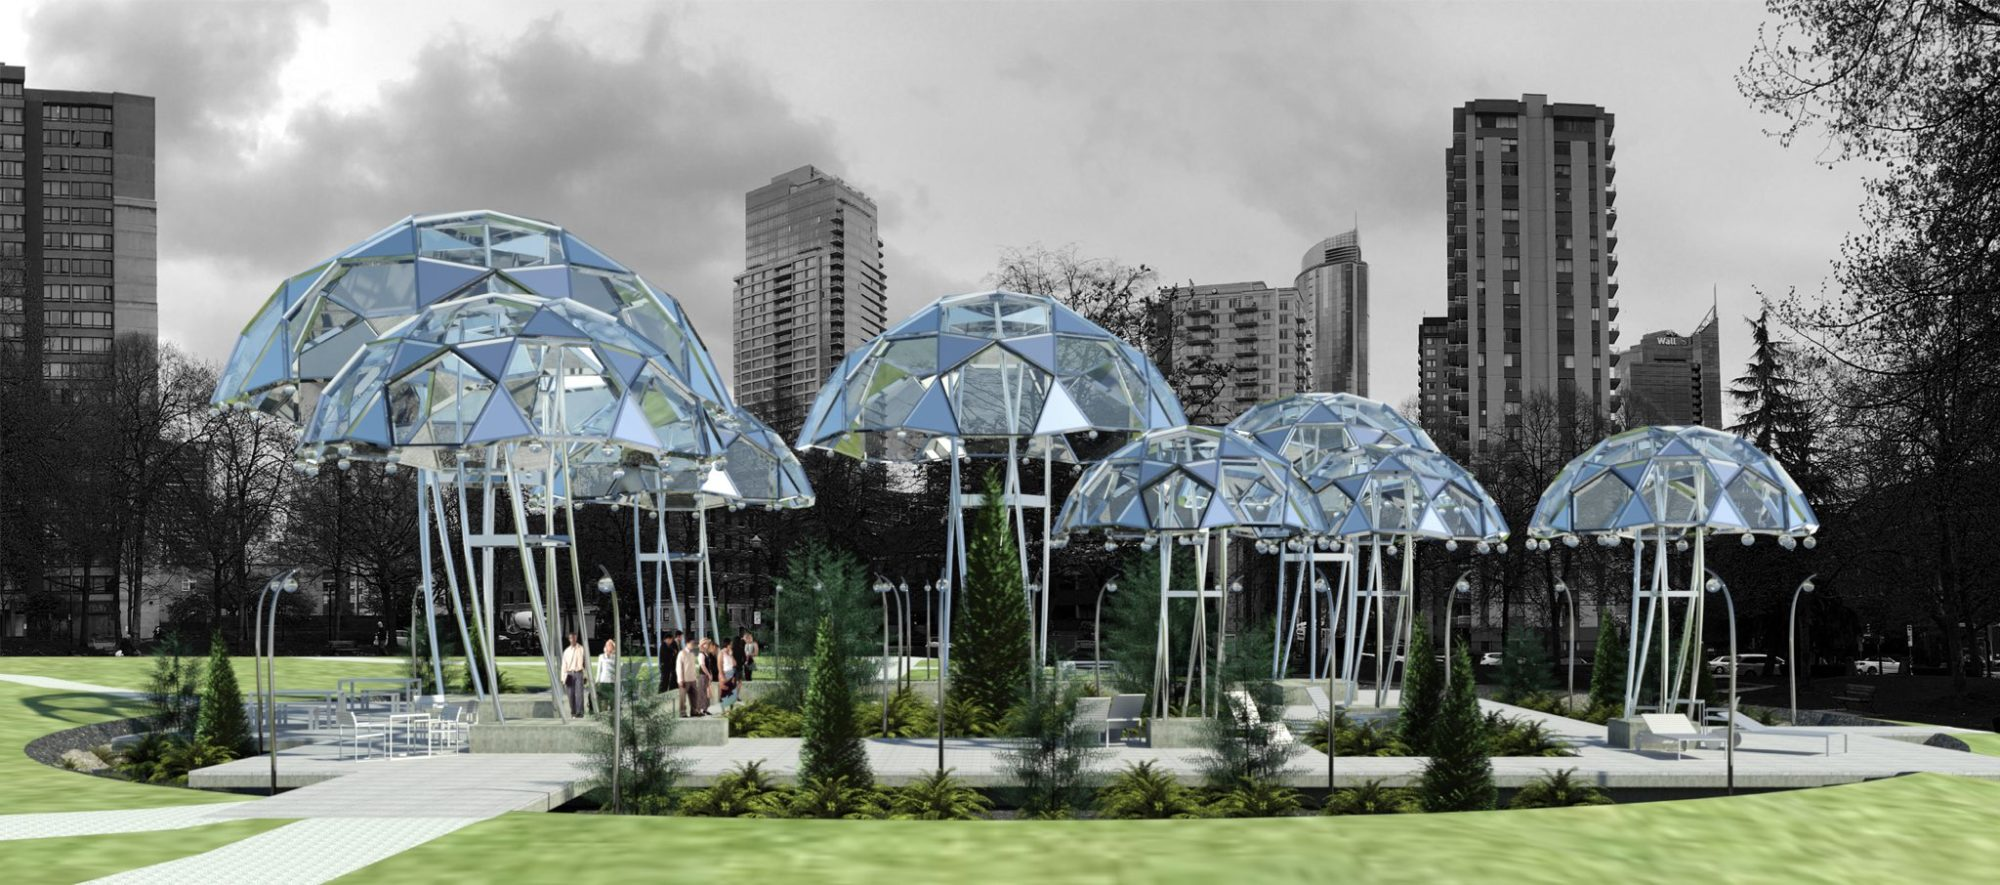 Life Between Umbrellas competition offers shelter from Raincouver